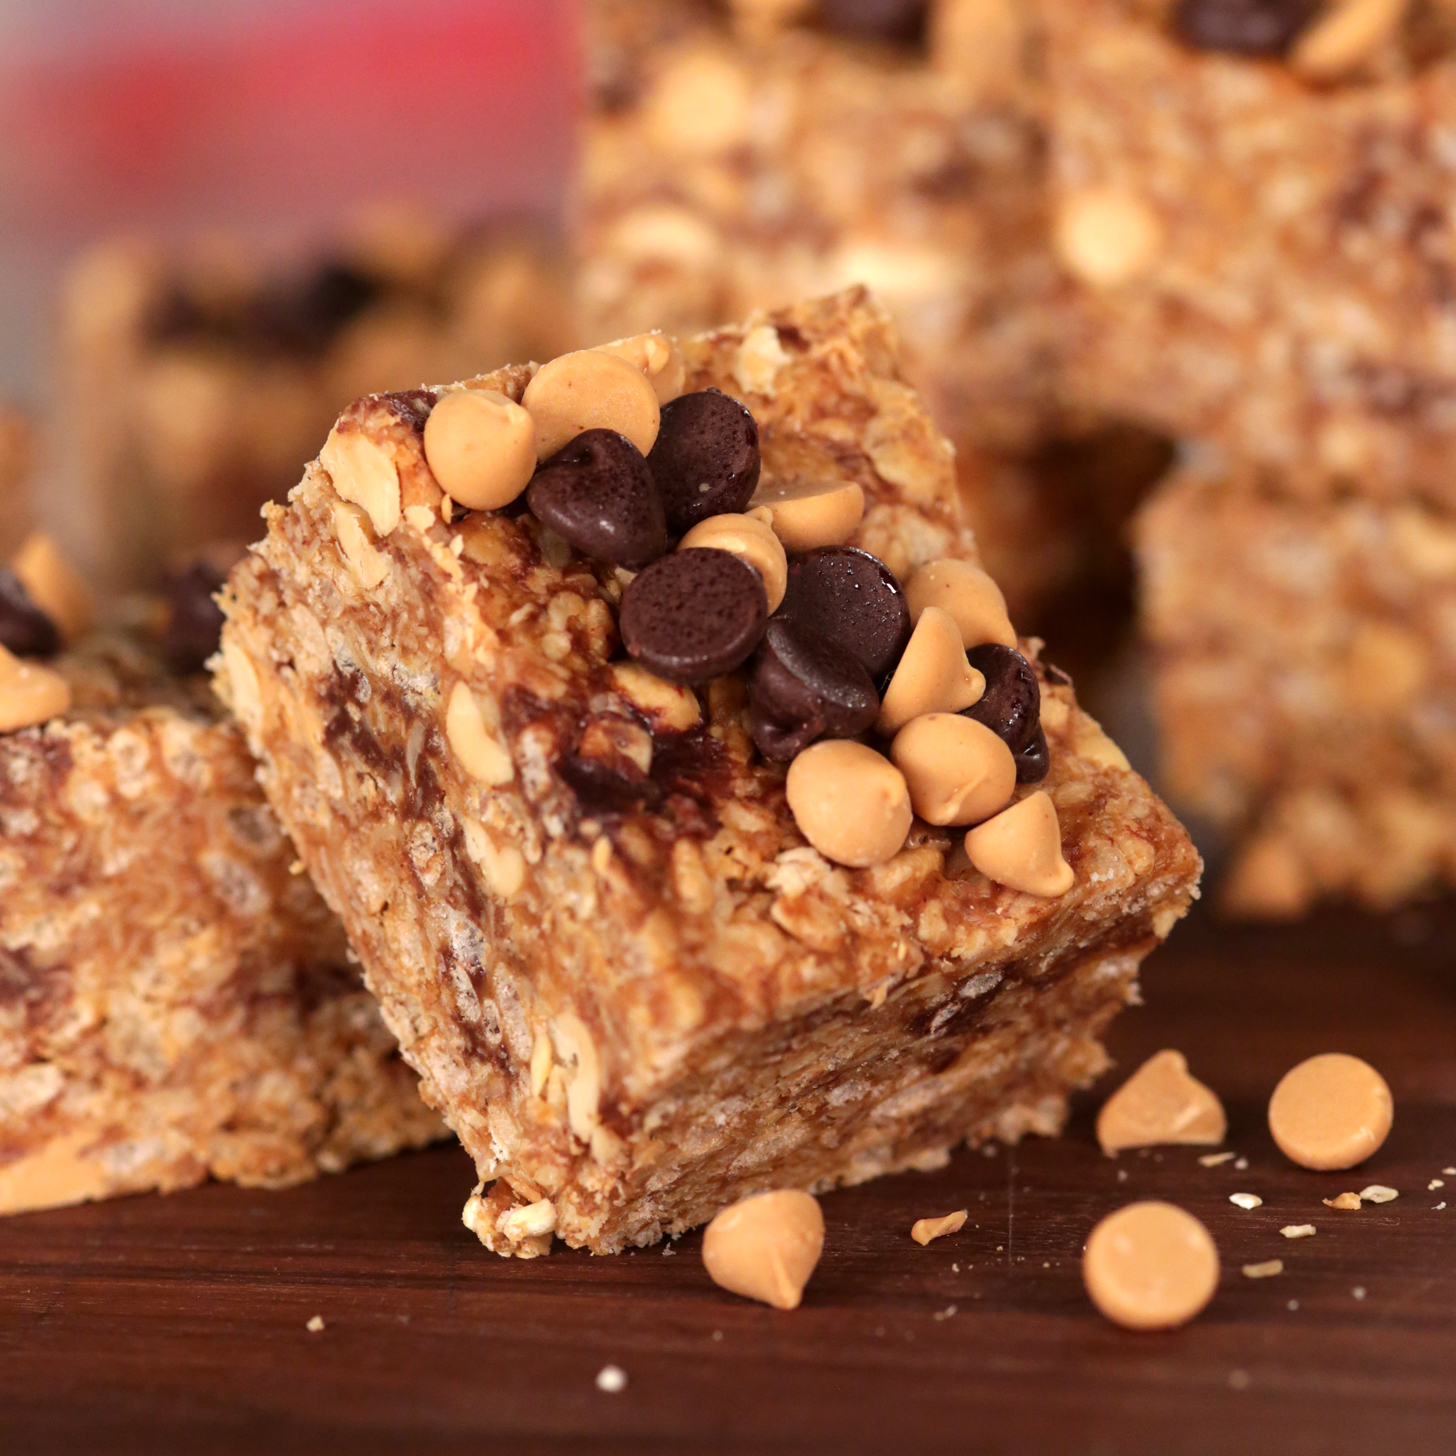 No-Bake Chocolate and Peanut Butter Granola Bars | POPSUGAR Food